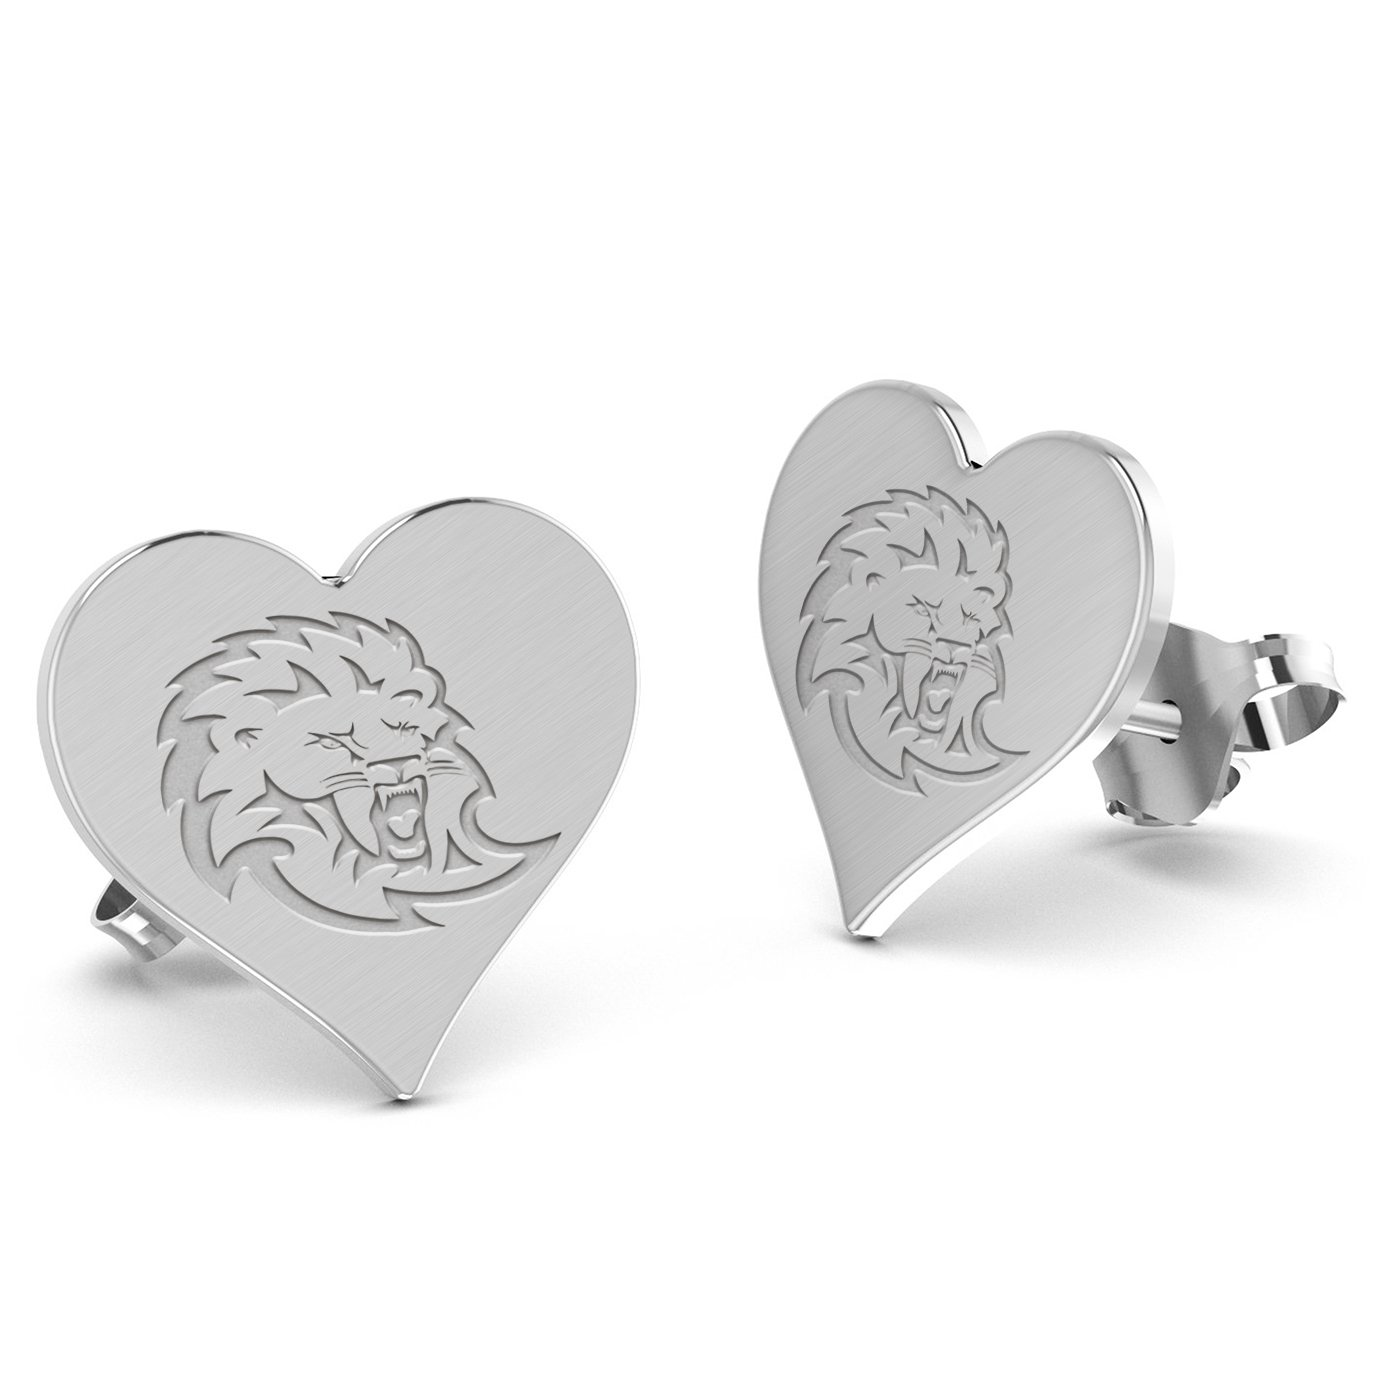 Southeastern Louisiana Lions Heart Stud Earring See Image on Model for Size Reference